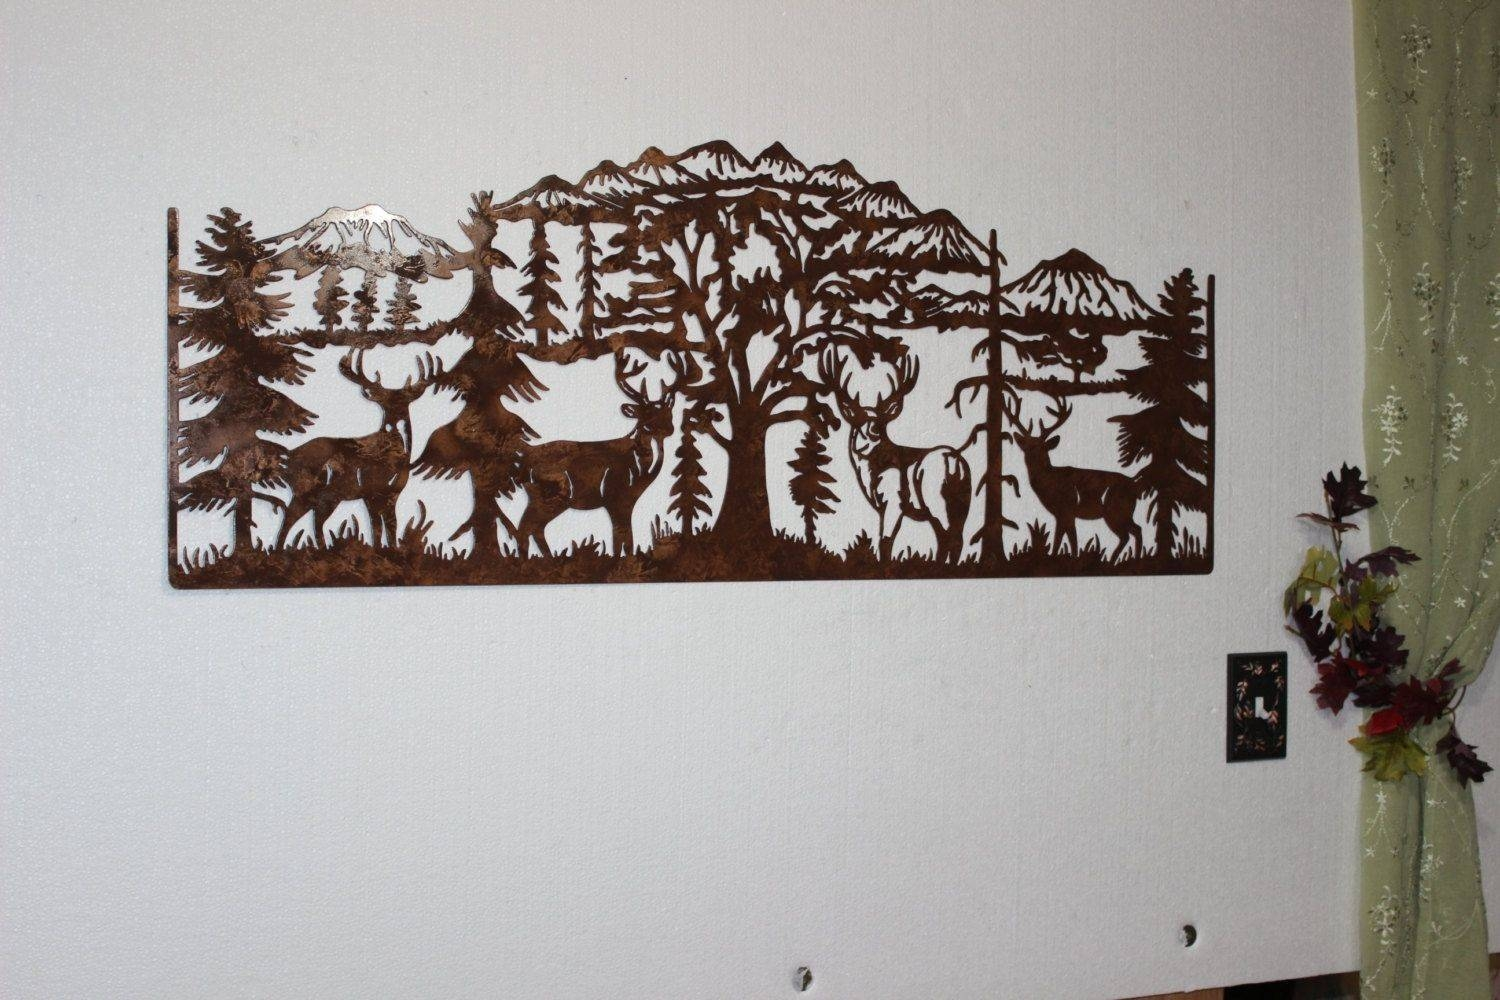 Hand Crafted Deer And Mountain Scene With 4 Majestic Bucks Large Intended For Recent Big Metal Wall Art (View 8 of 15)